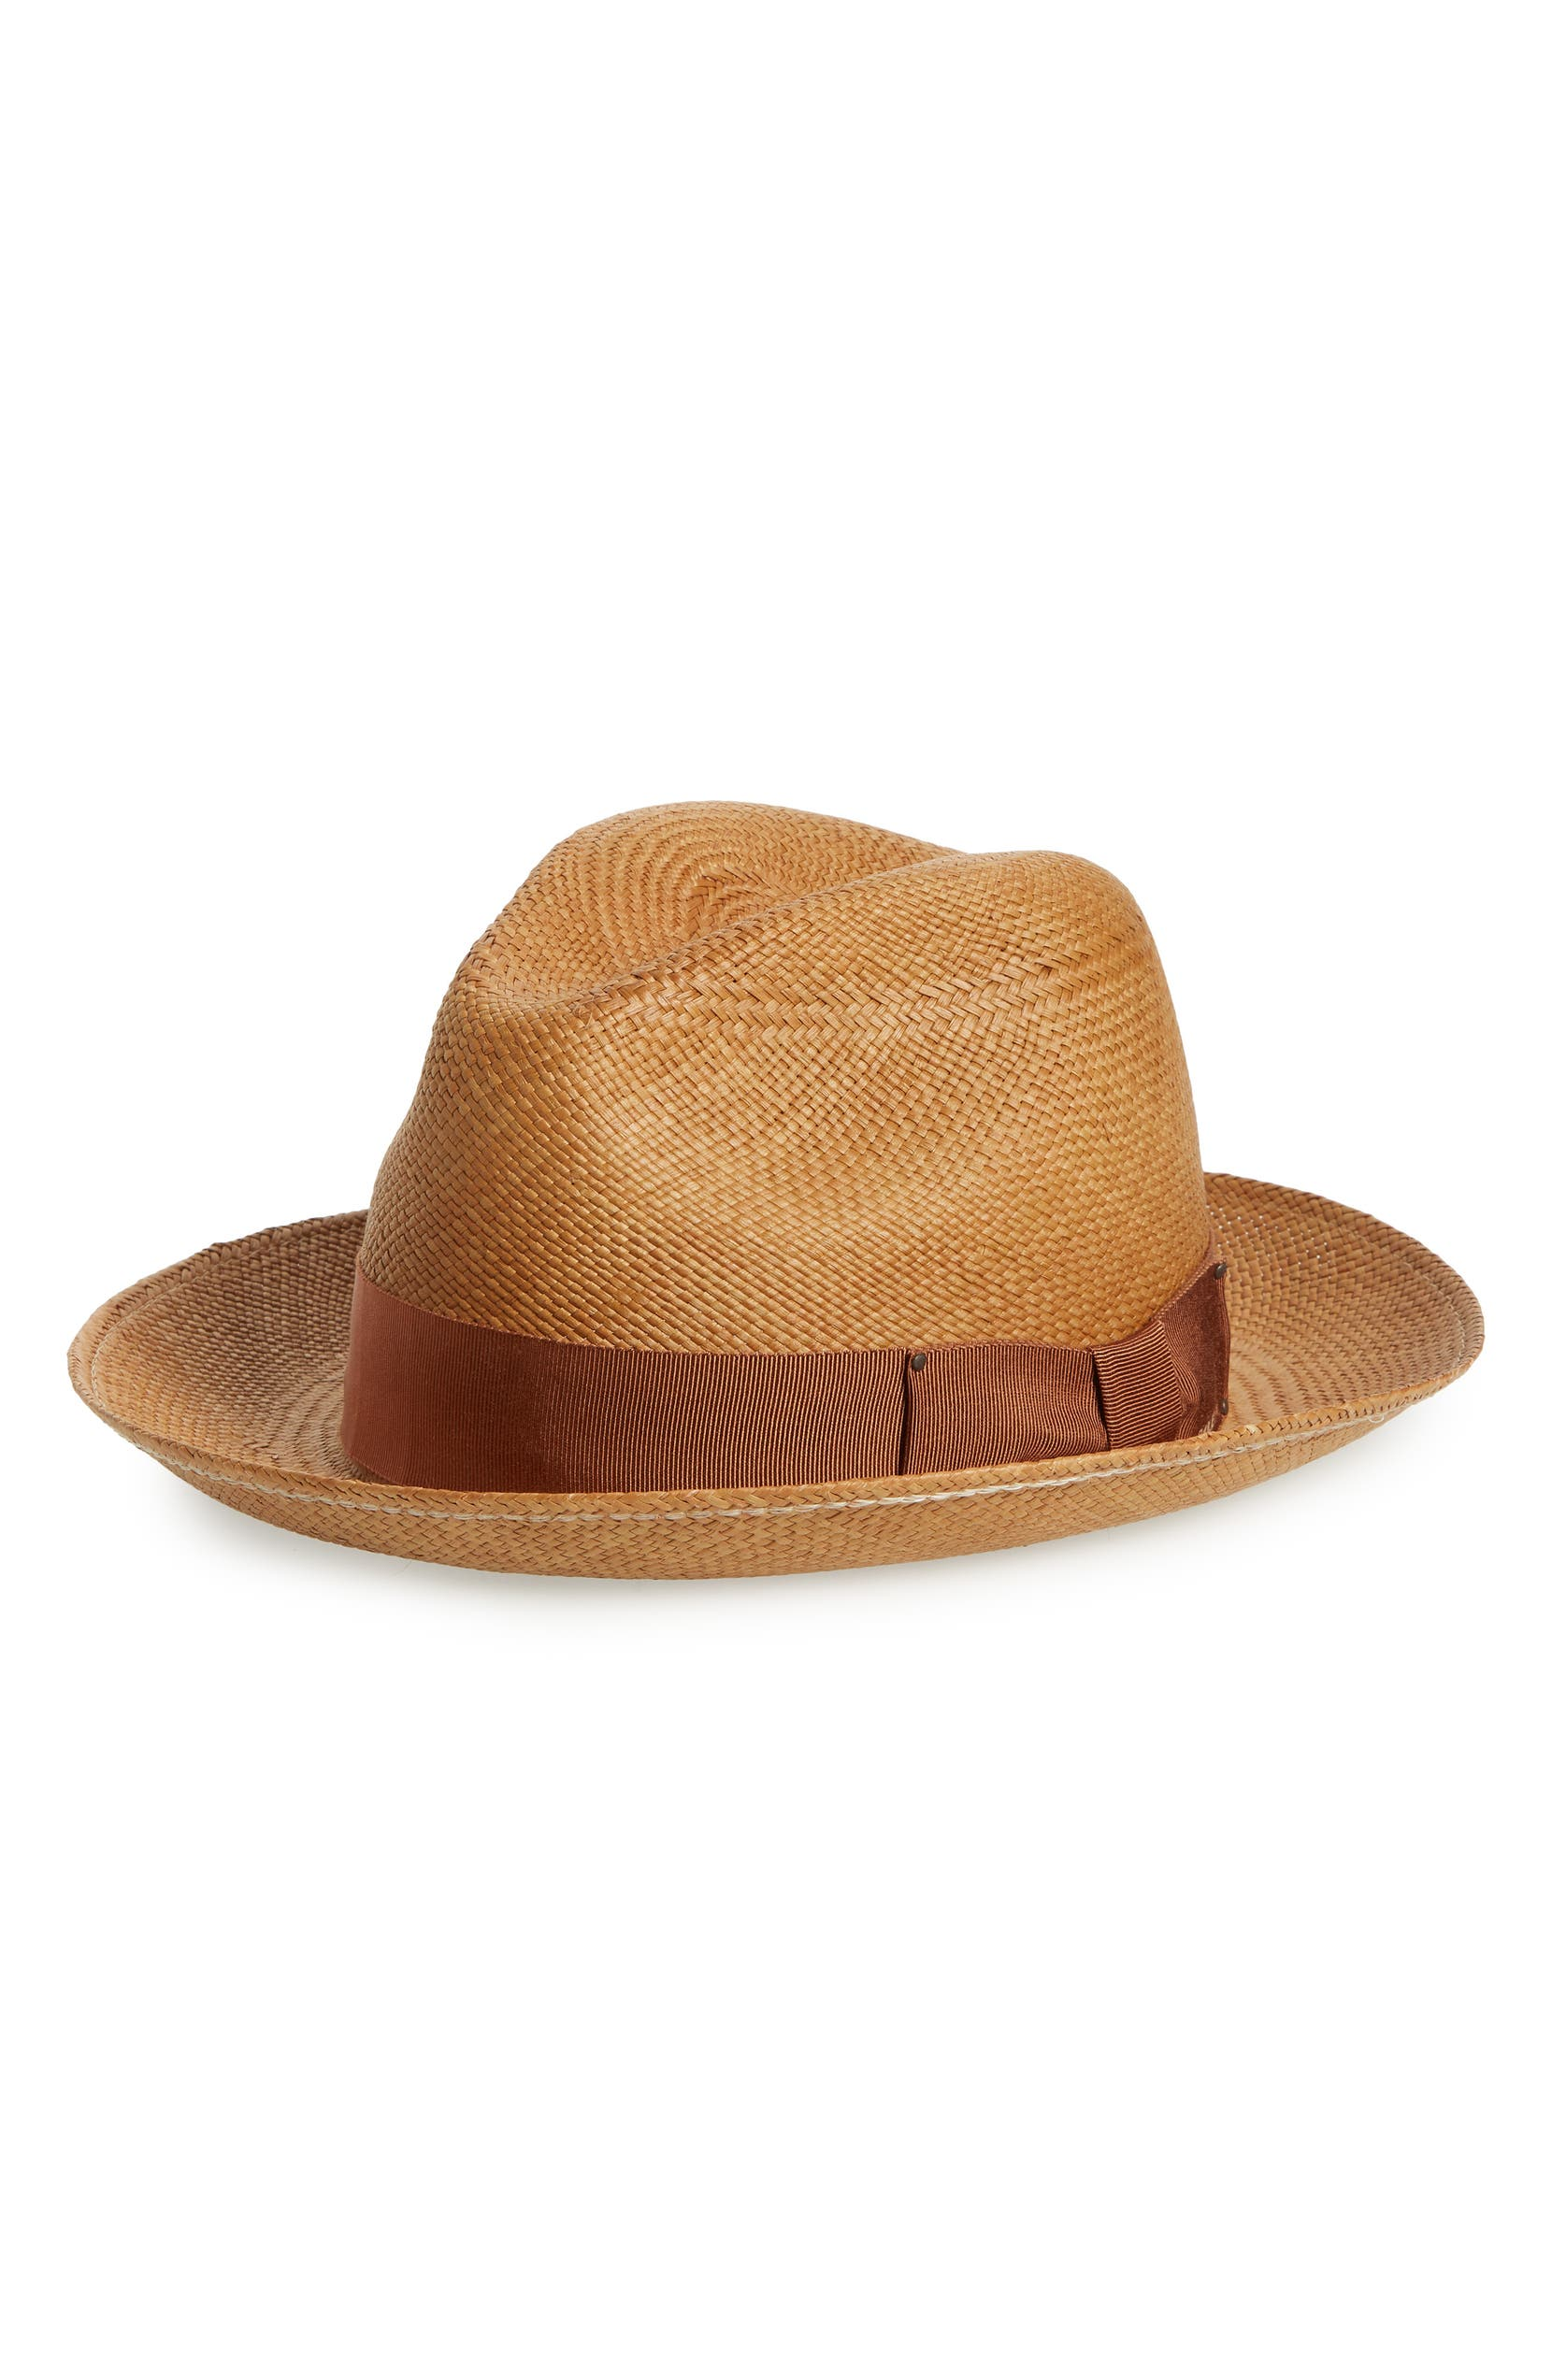 8a7bf800f Bailey Thurman Straw Panama Hat | Nordstrom